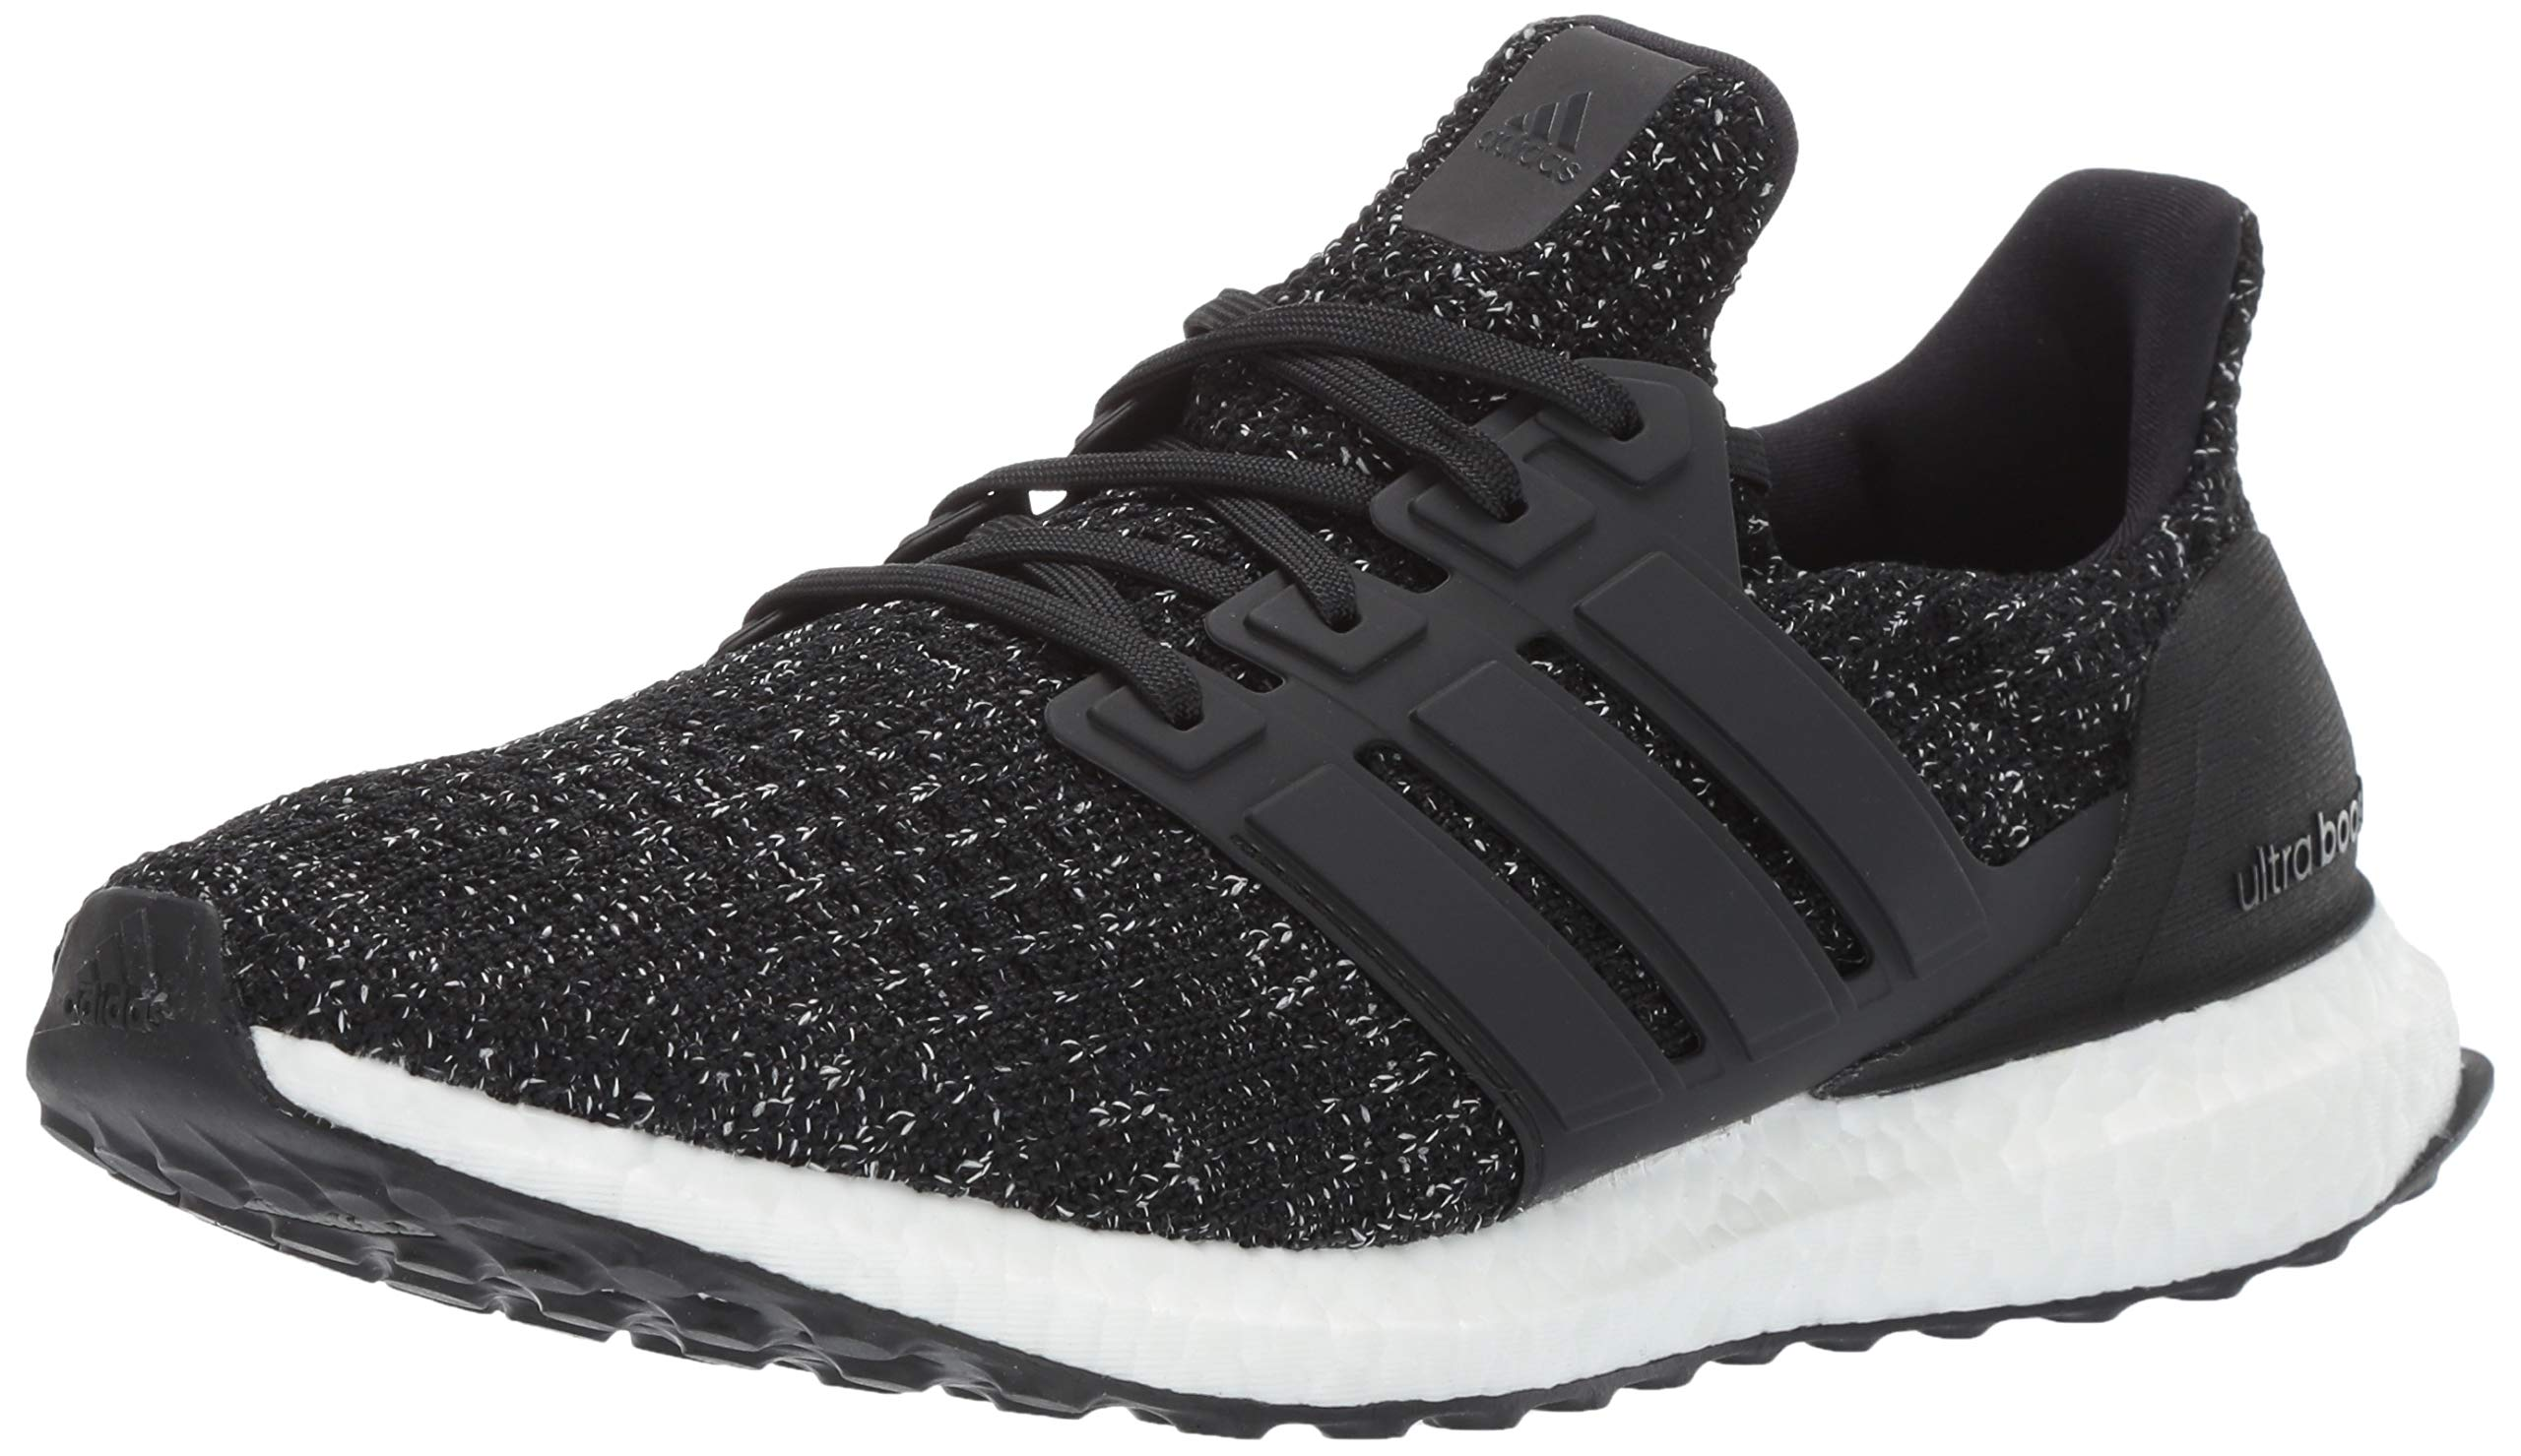 adidas Men's Ultraboost, Black/White, 4.5 M US